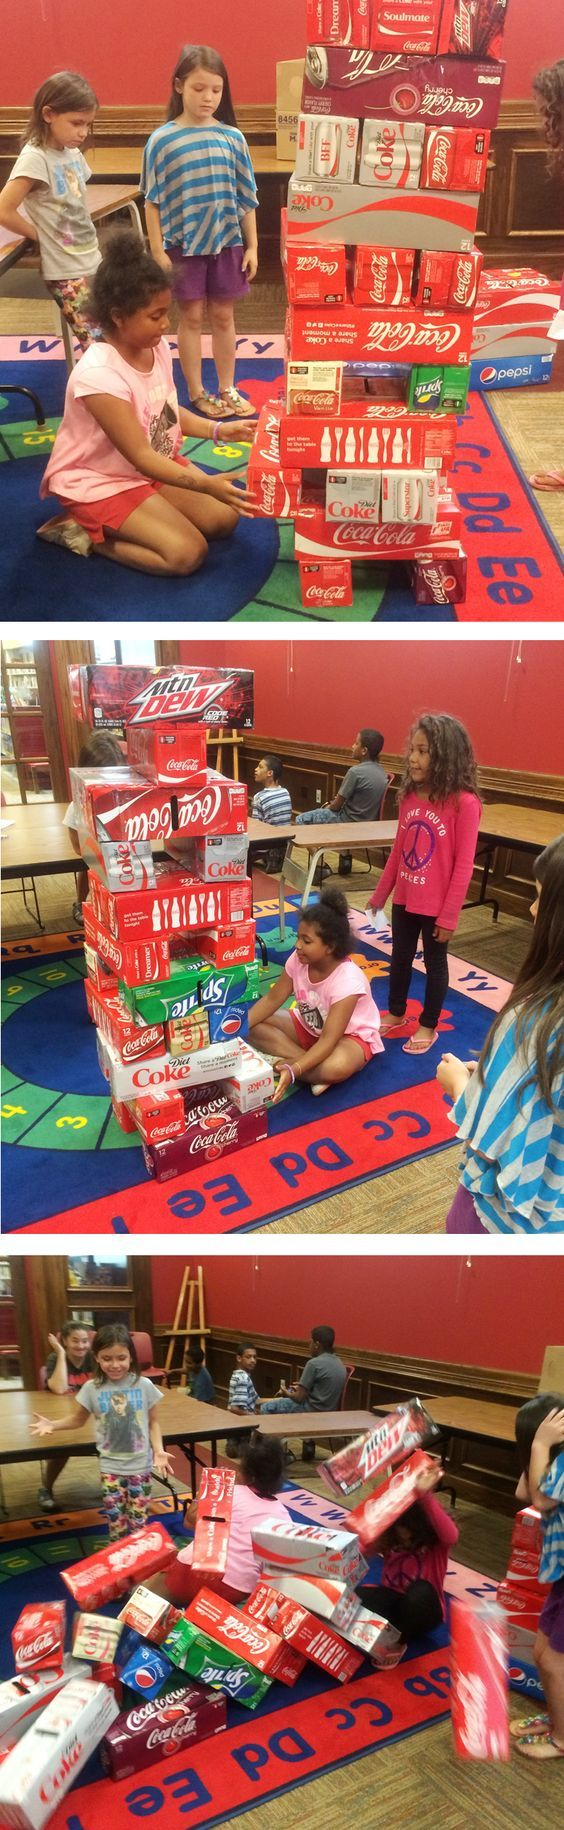 Why spend the money on a giant Jenga set, when you can reuse, reduce, and recycle one from old soda cartons?! The Library often hosts giant games programs using found or reclaimed items! Check out our program calendar for upcoming events and fun things for kids to do!: